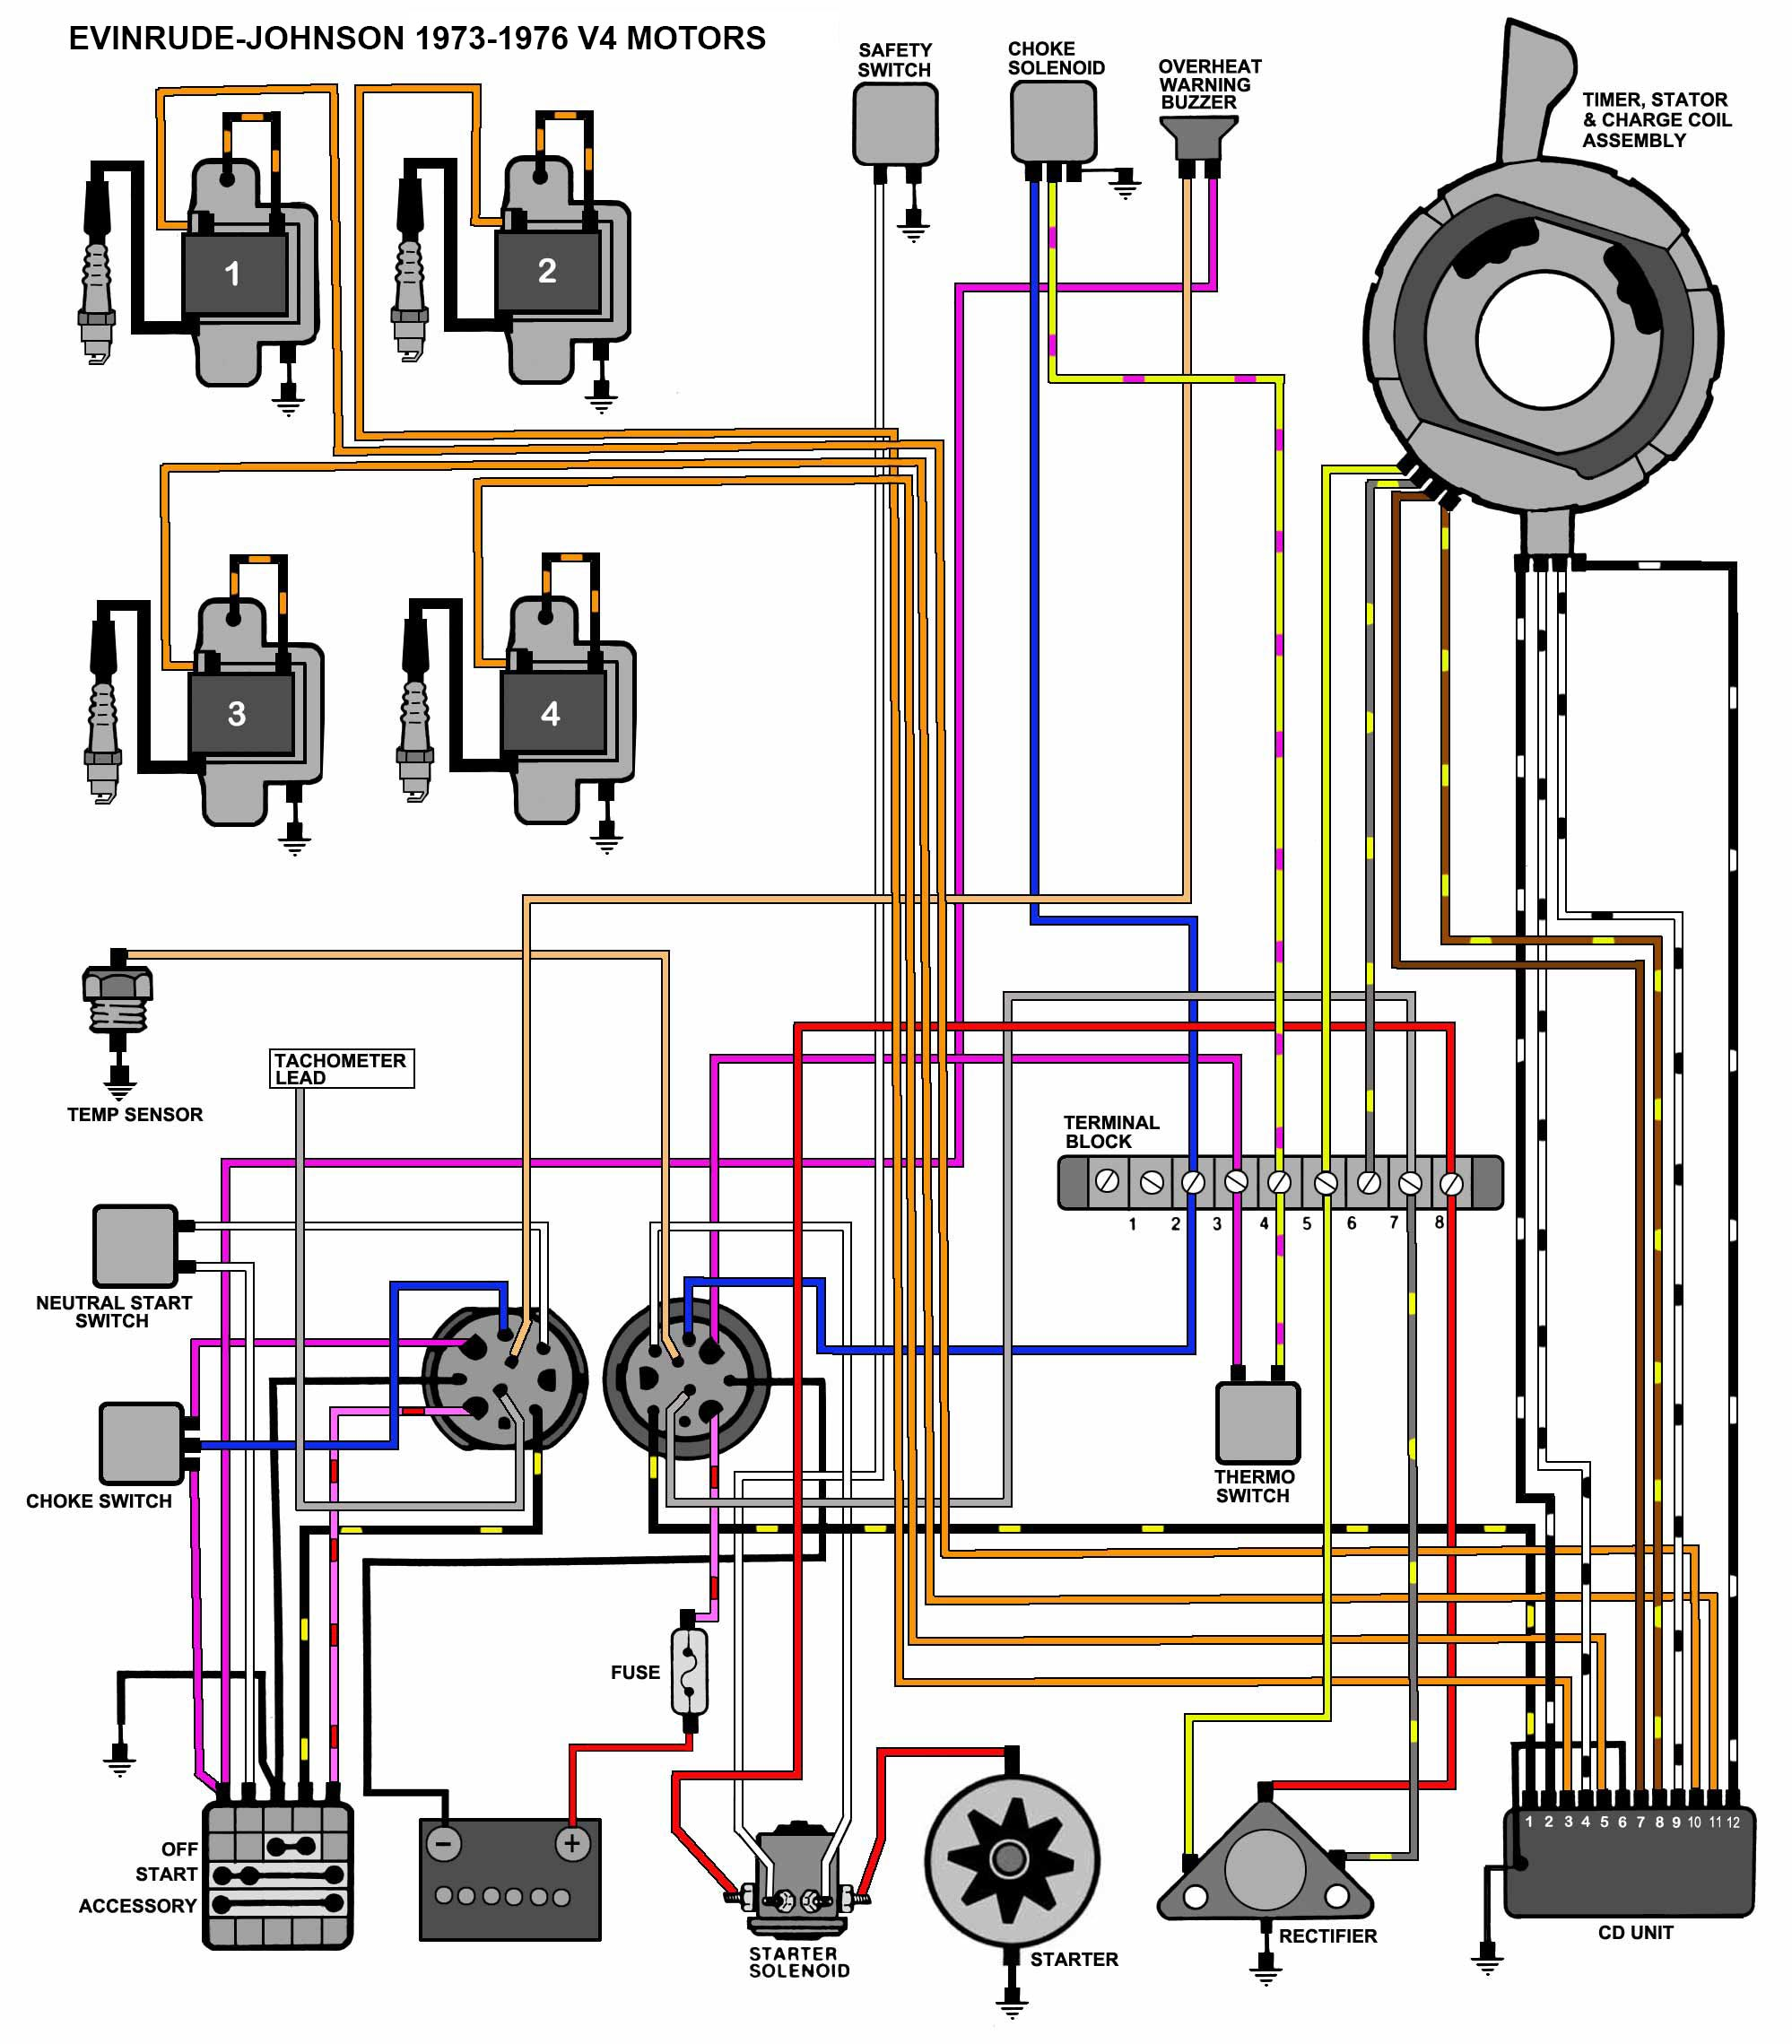 mastertech marine evinrude johnson outboard wiring diagrams v 4 85 hp motors 1969 70 w alternator